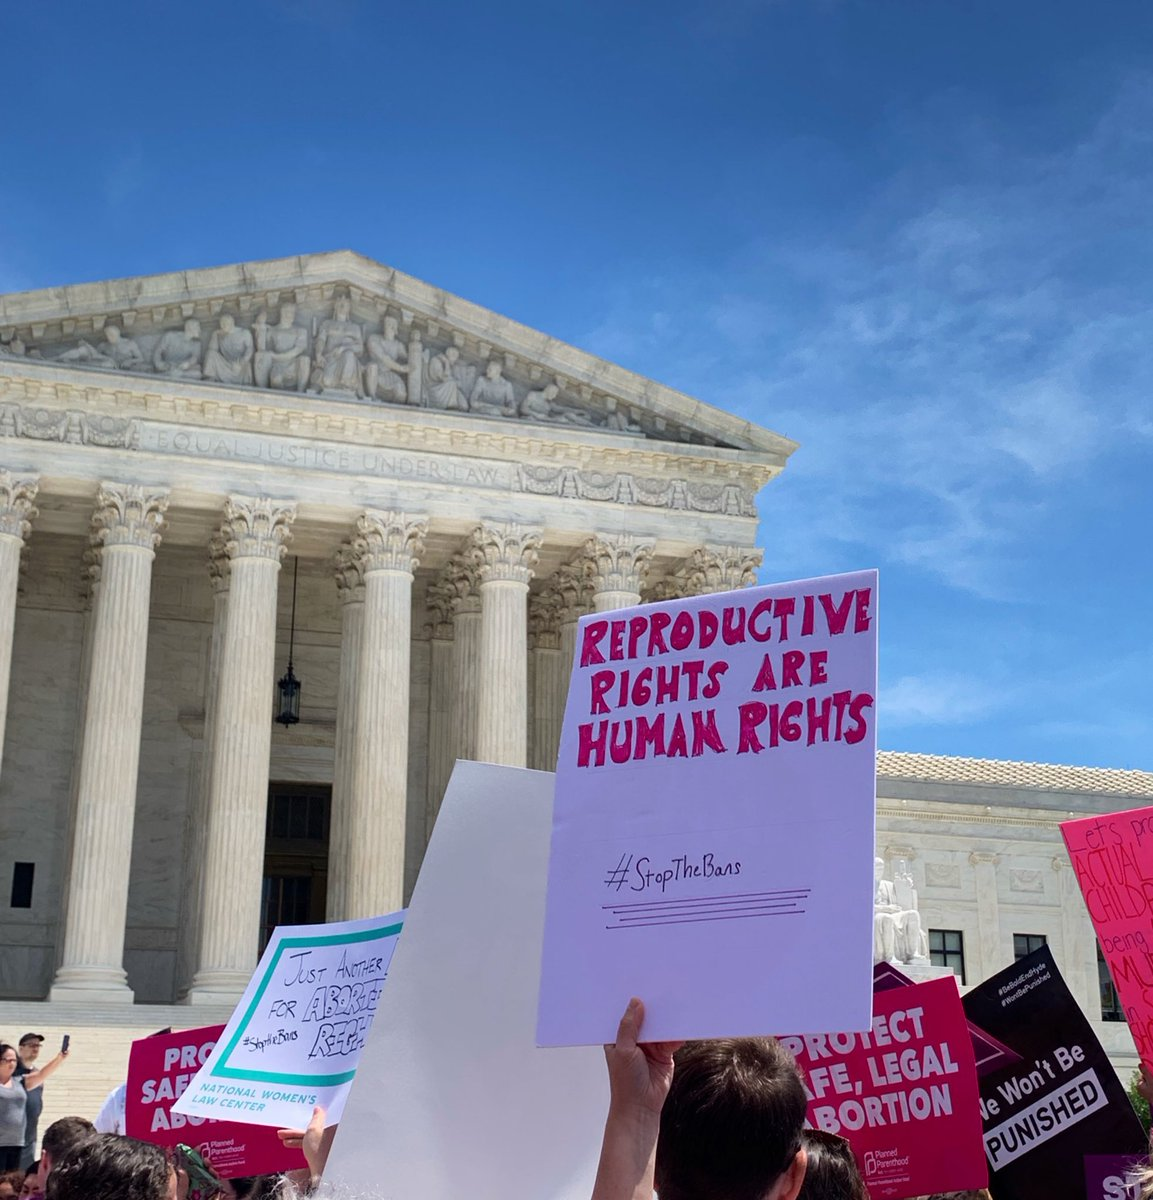 RT @ACLU: ???? Saying this louder for the people in the back: REPRODUCTIVE RIGHTS ARE HUMAN RIGHTS #StopTheBans https://t.co/uW1NxetWtK